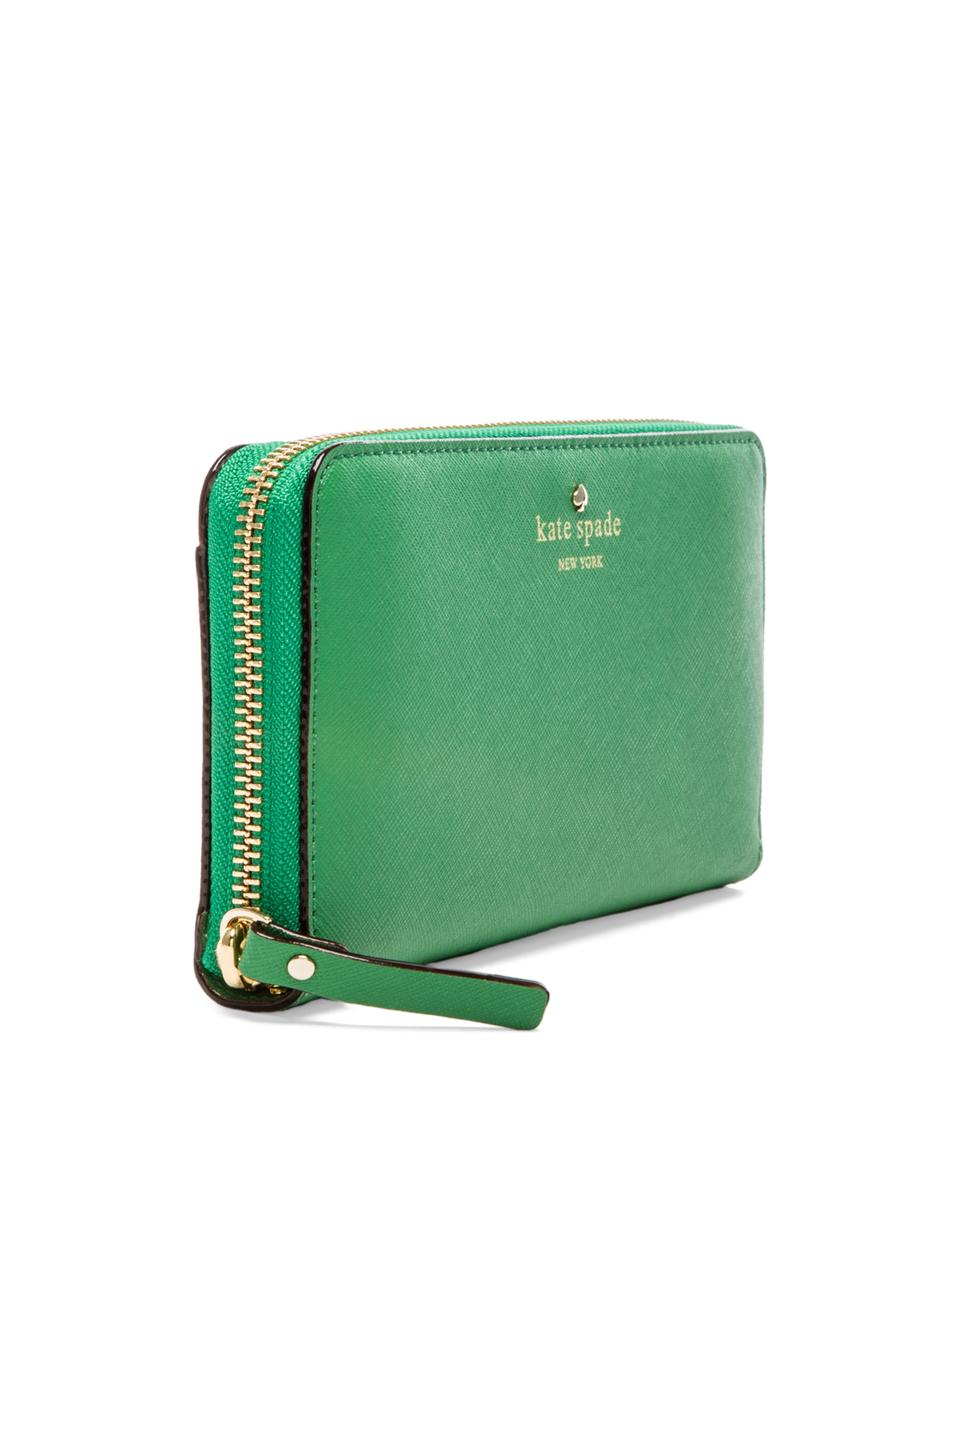 Lyst - Kate Spade New York Lacey Wallet in Green